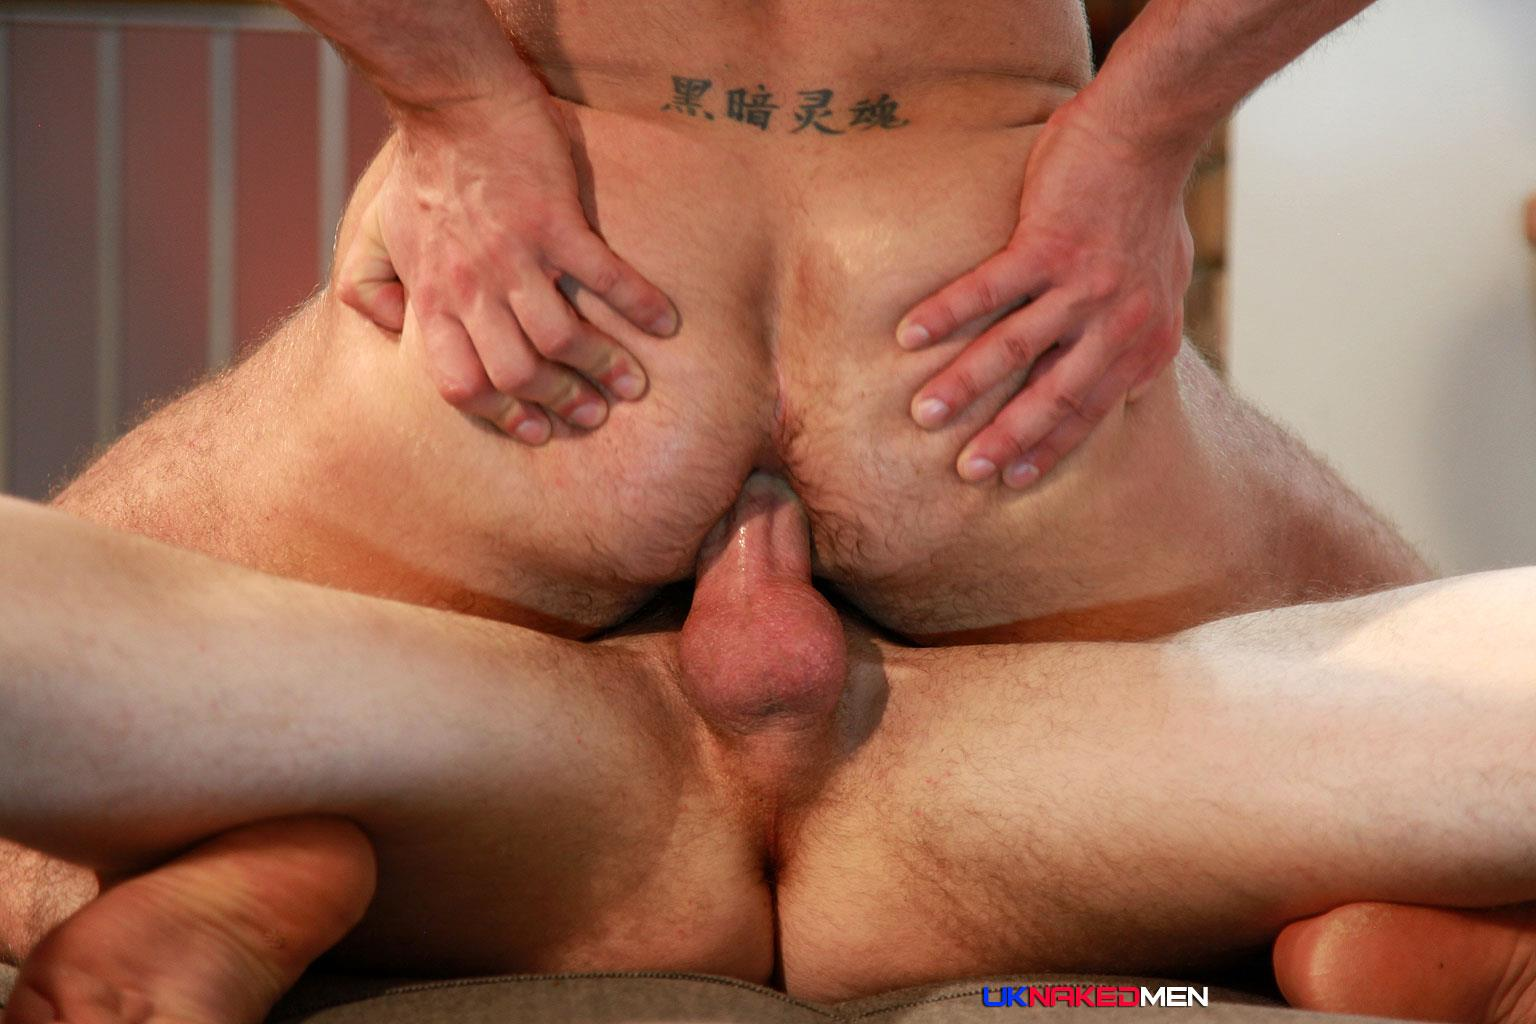 UK-Naked-Men-AJ-Alexander-and-Patryk-Jankowski-Big-Uncut-Cock-Bareback-Sex-Amateur-Gay-Porn-18 Hairy Muscle Hunk Gets Fucked By A Scottish Guy With A Big Uncut Cock